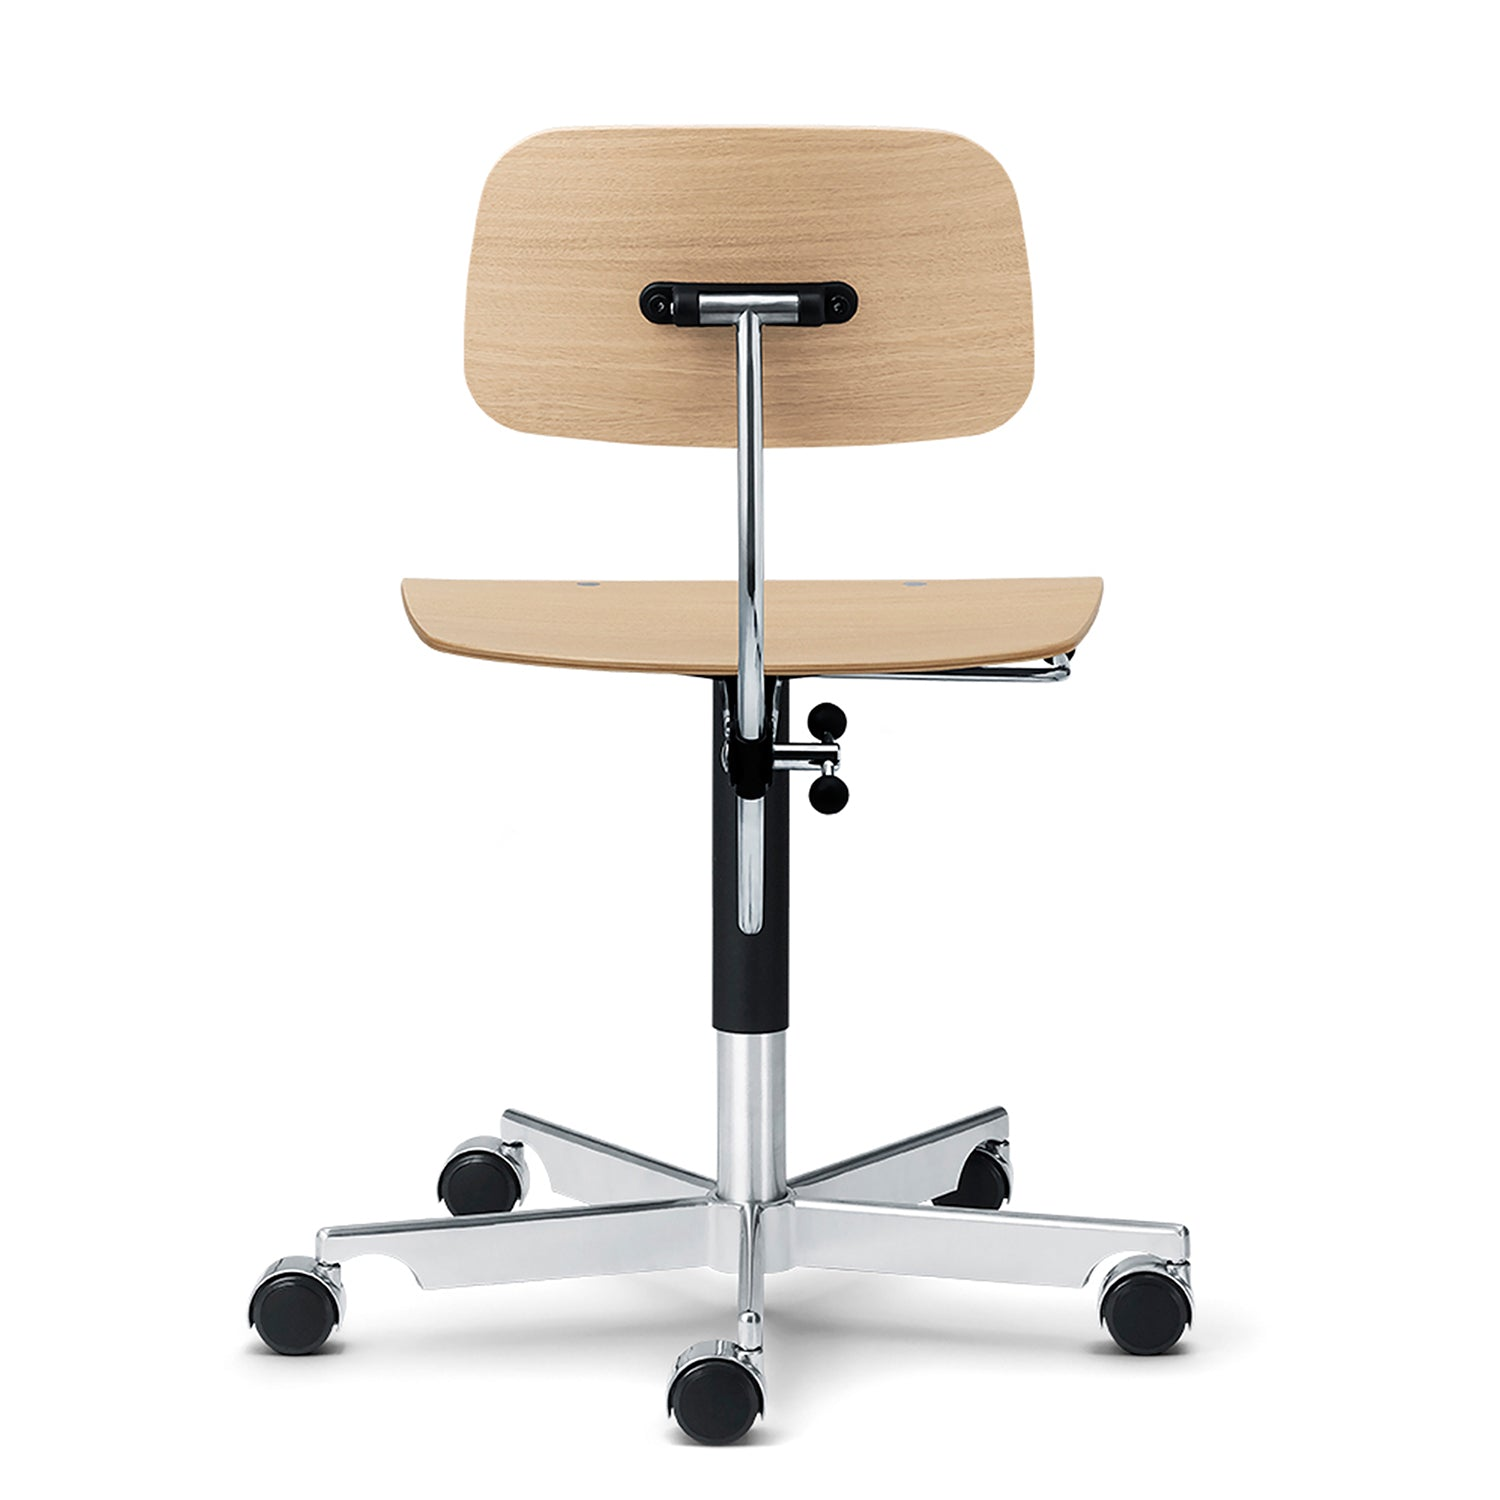 Kevi Chair 2533: Wood + Oak Veneer